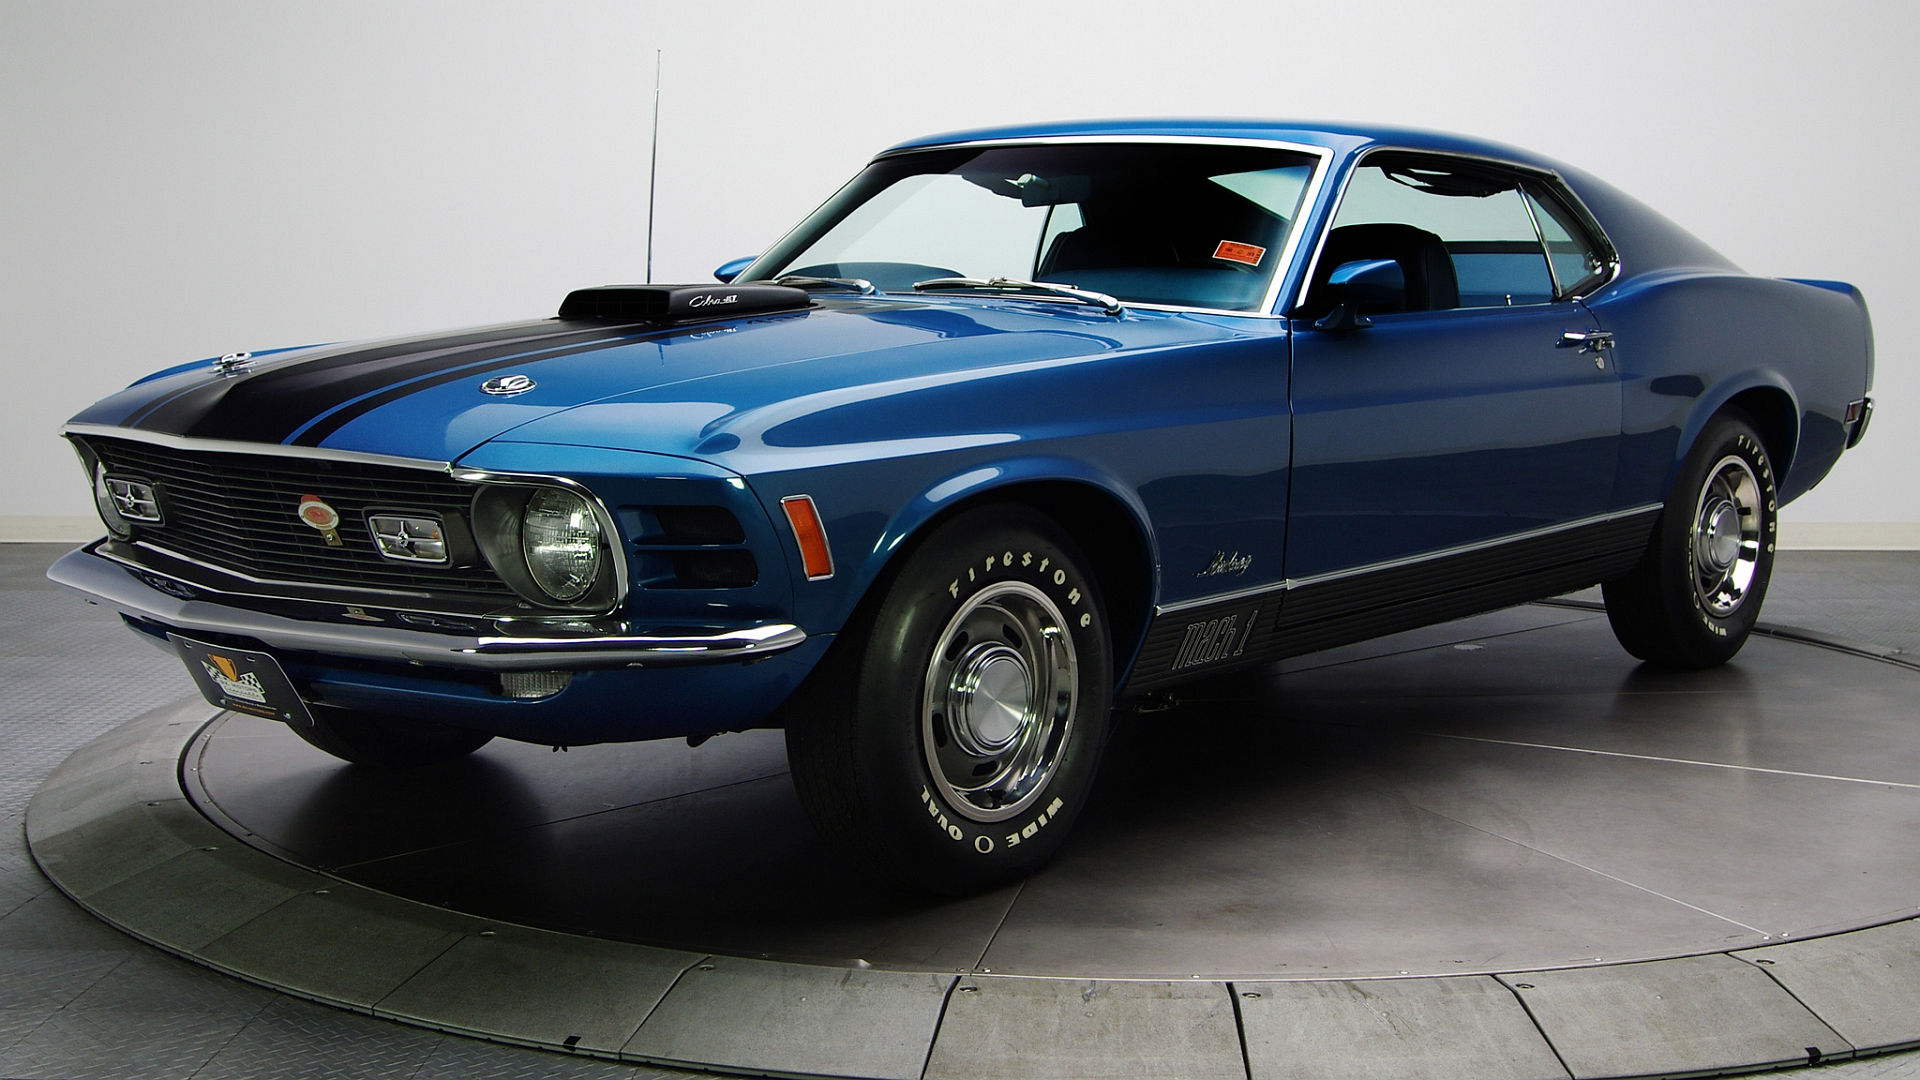 Ford Mustang Mach 1 HD Wallpaper Background Image